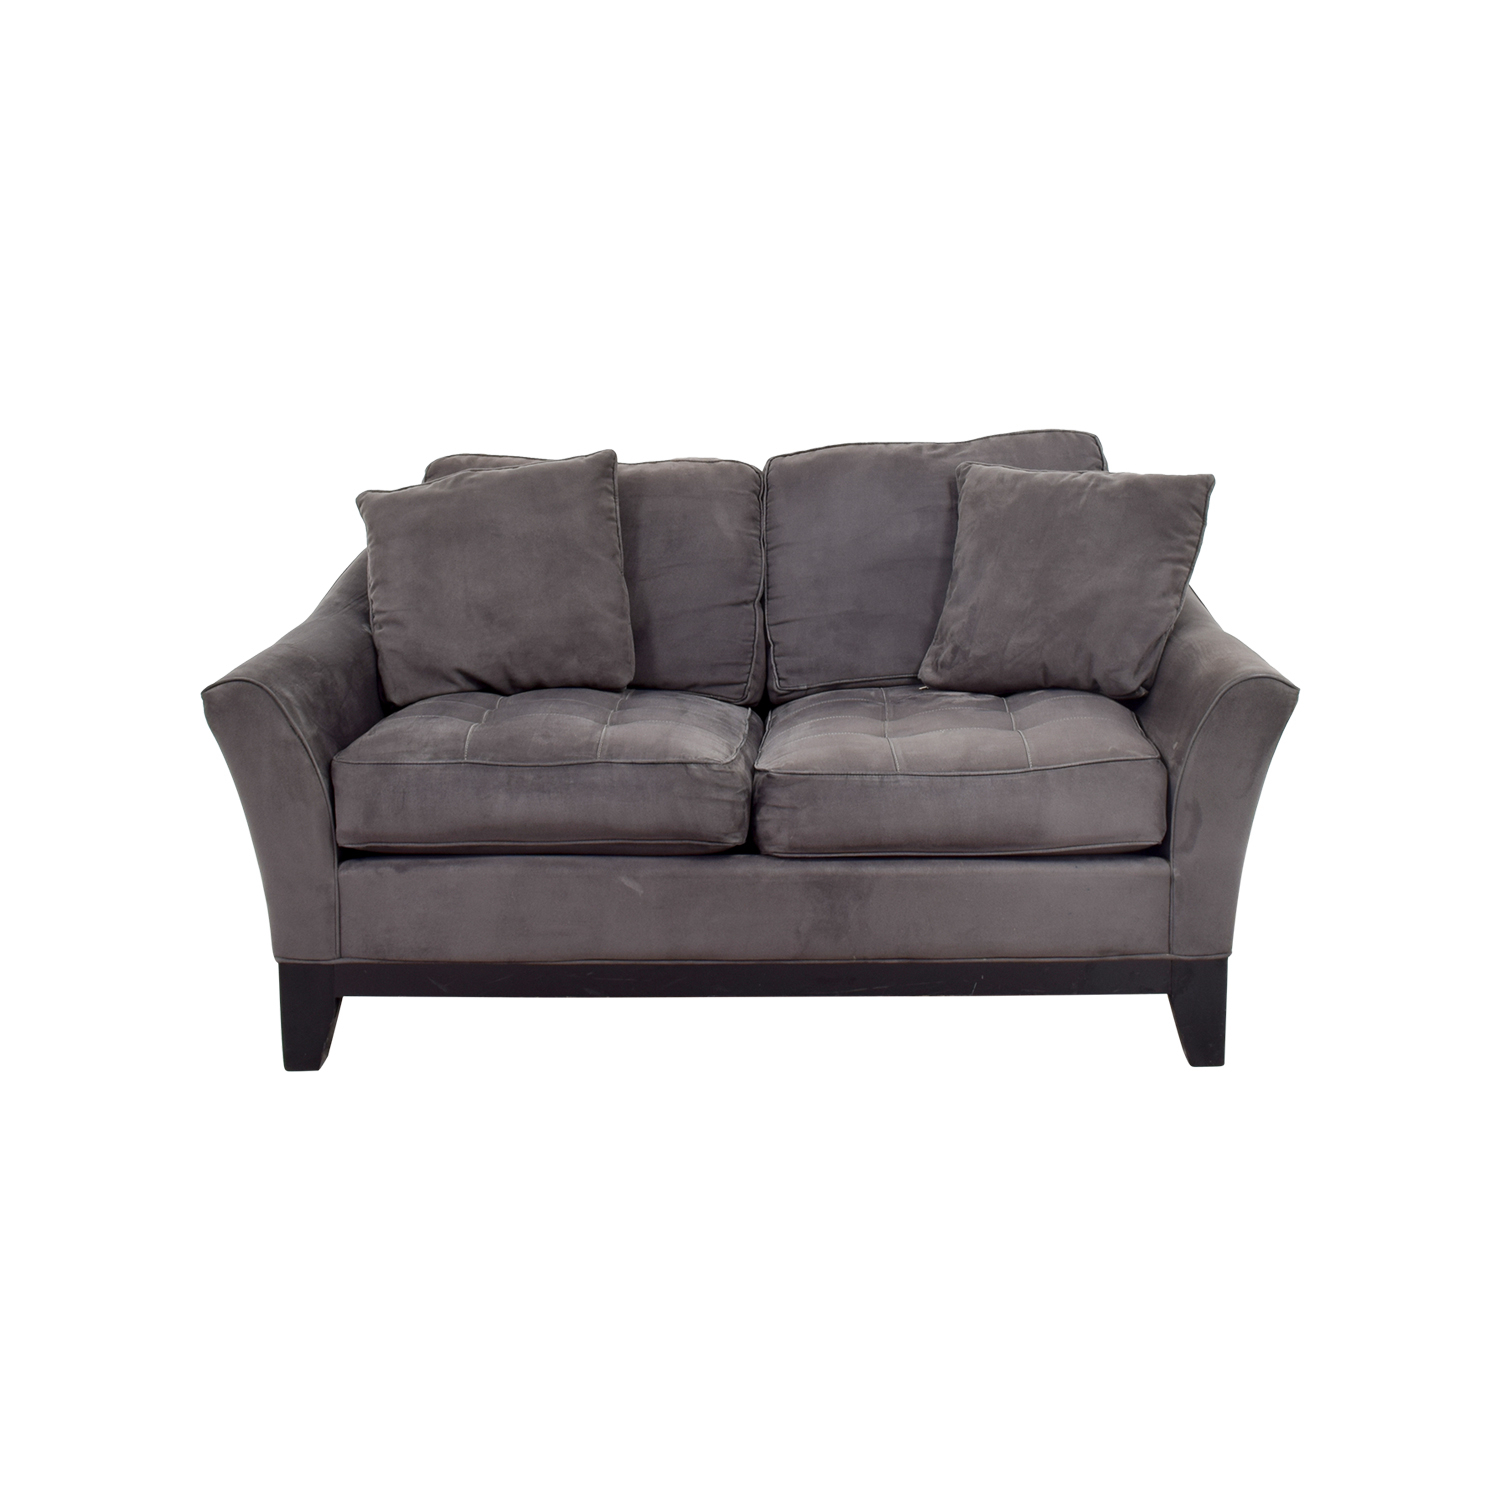 75% Off - Raymour & Flanigan Raymour & Flanigan Rory Slate in Rory Sofa Chairs